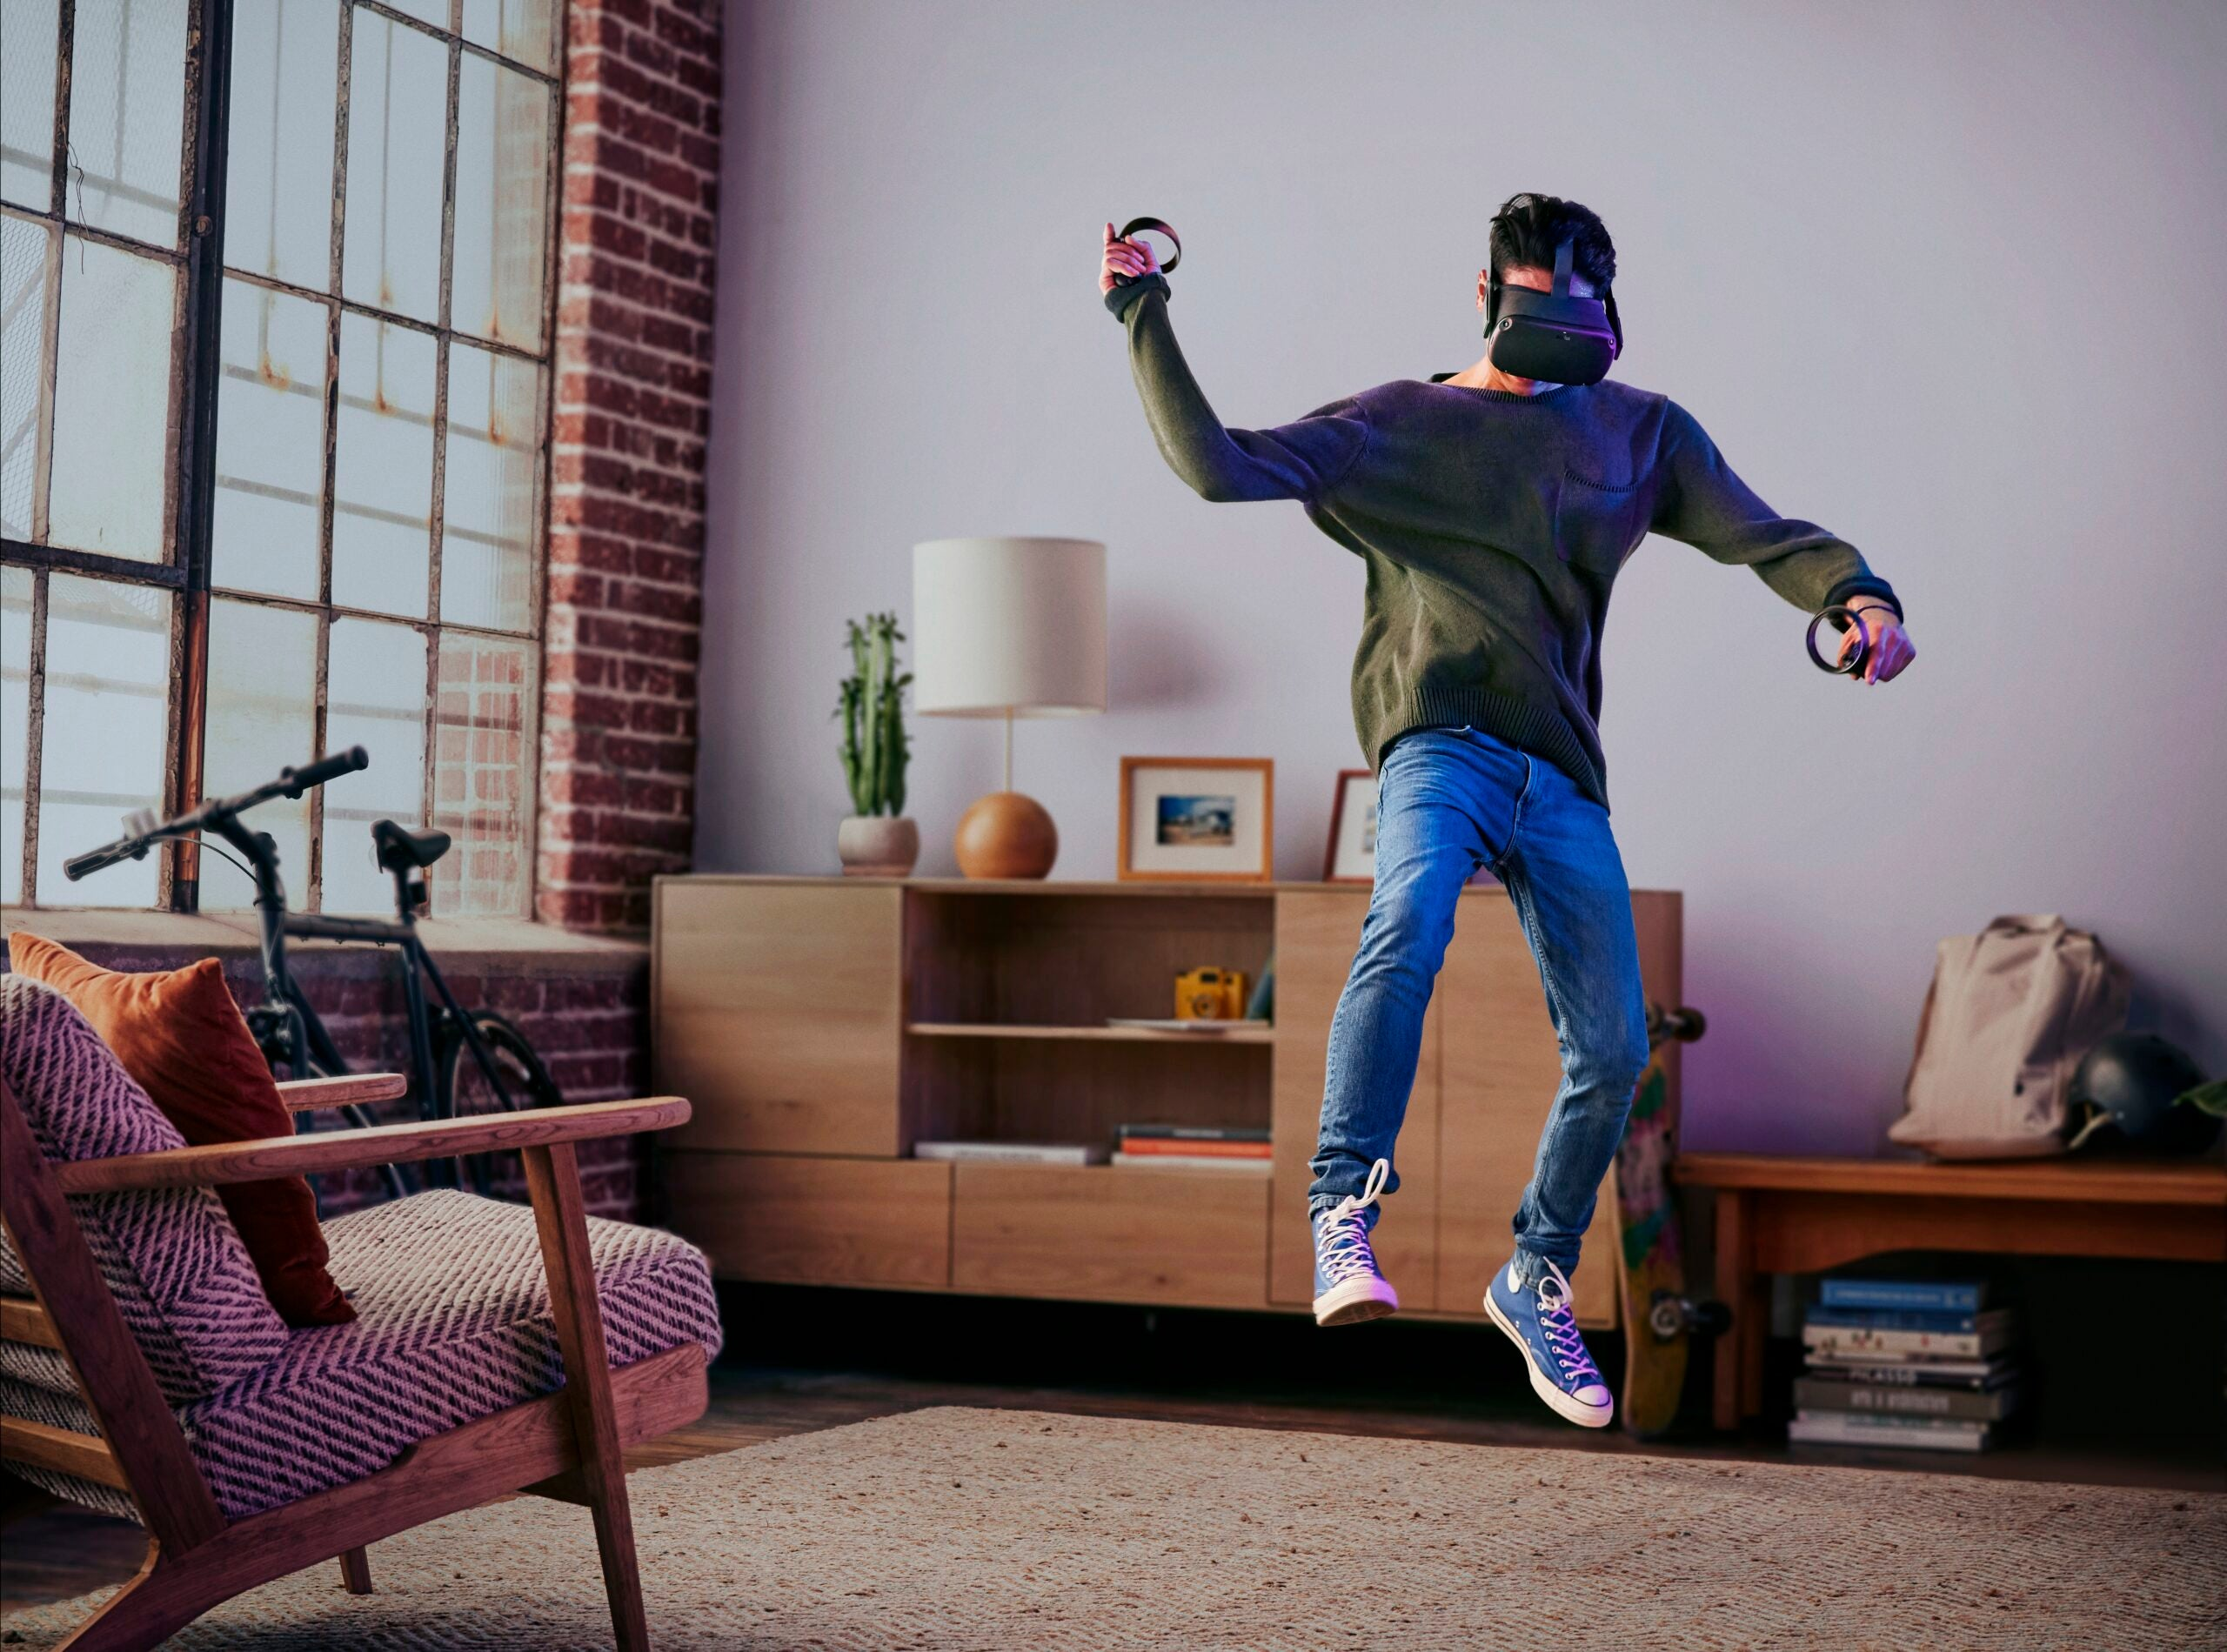 The Oculus Quest's new feature is a crucial step for mainstream VR